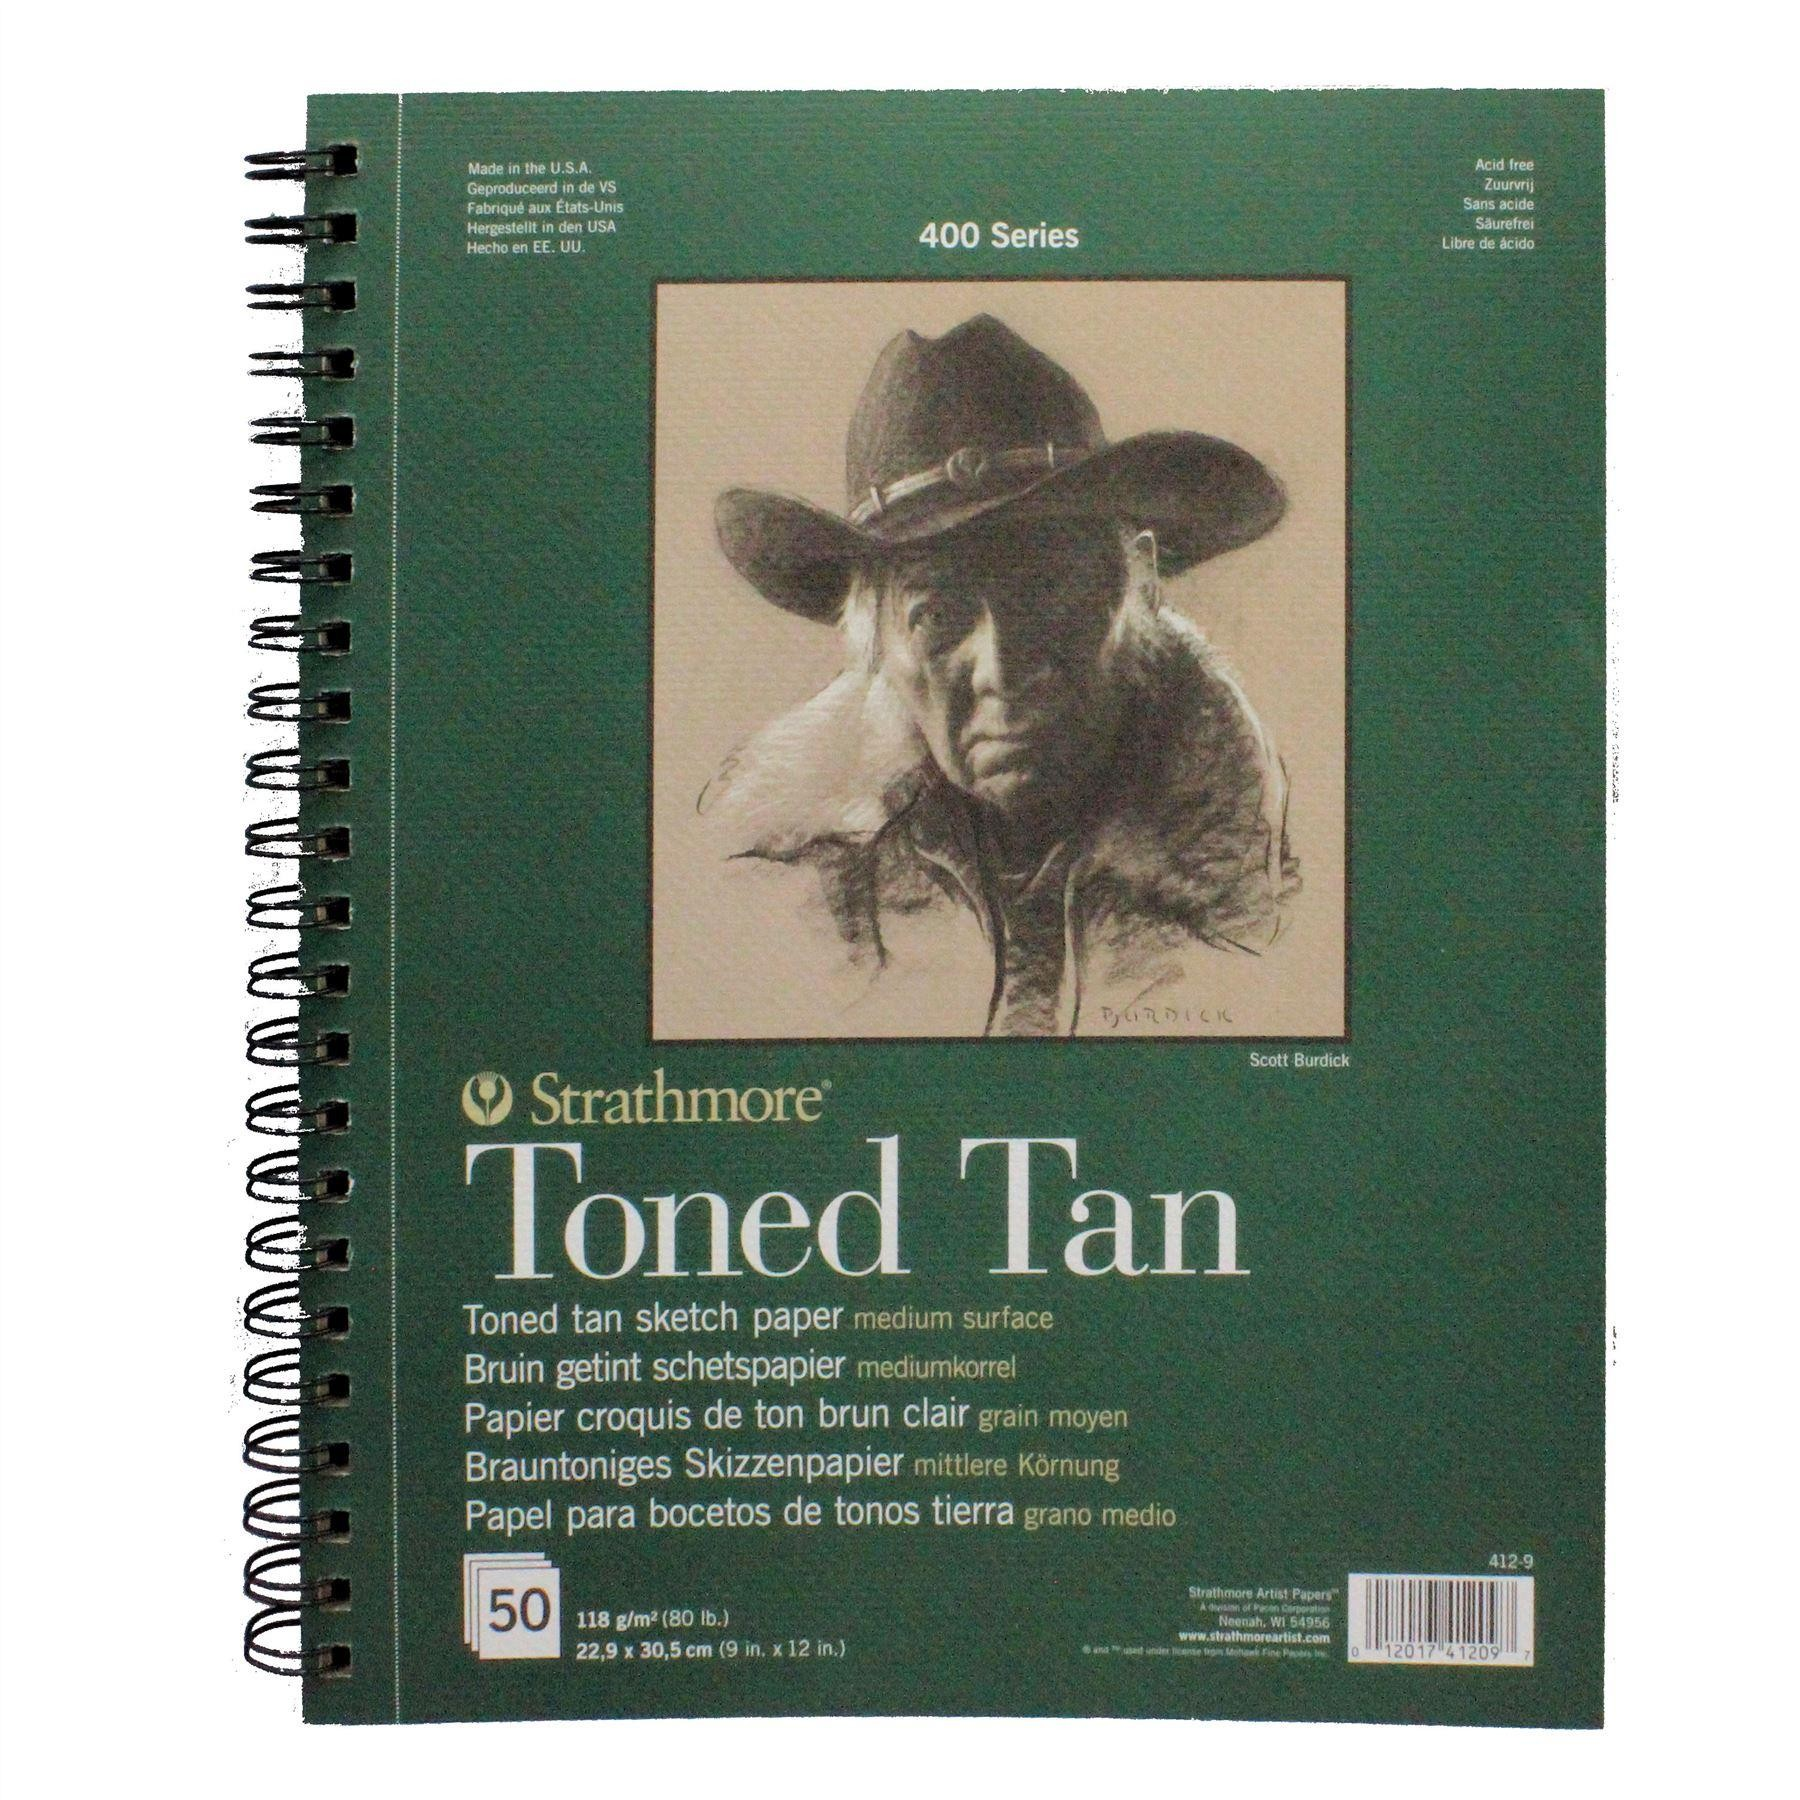 "Strathmore toned tan sketch paper 22.9 x 30.5cm 9""x12"", 50 sheets"